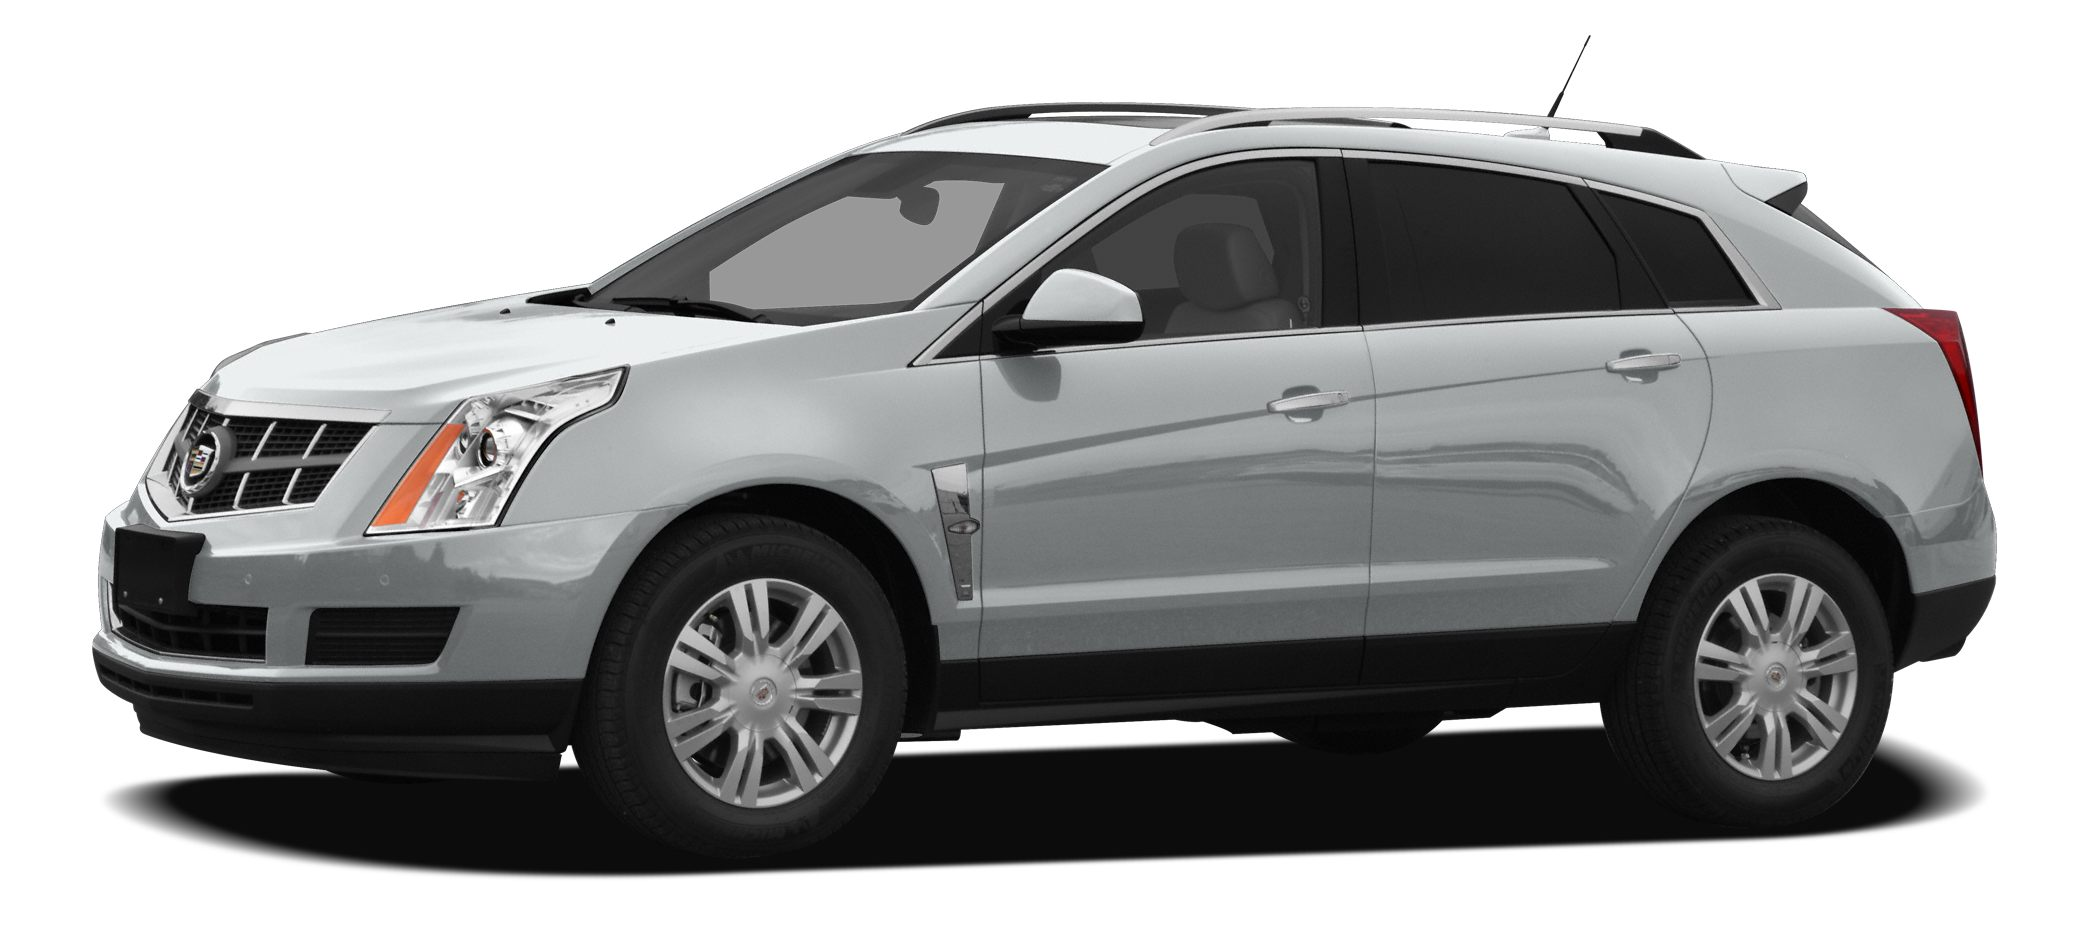 2011 Cadillac SRX Performance Collection Snatch a deal on this 2011 Cadillac SRX Performance Colle